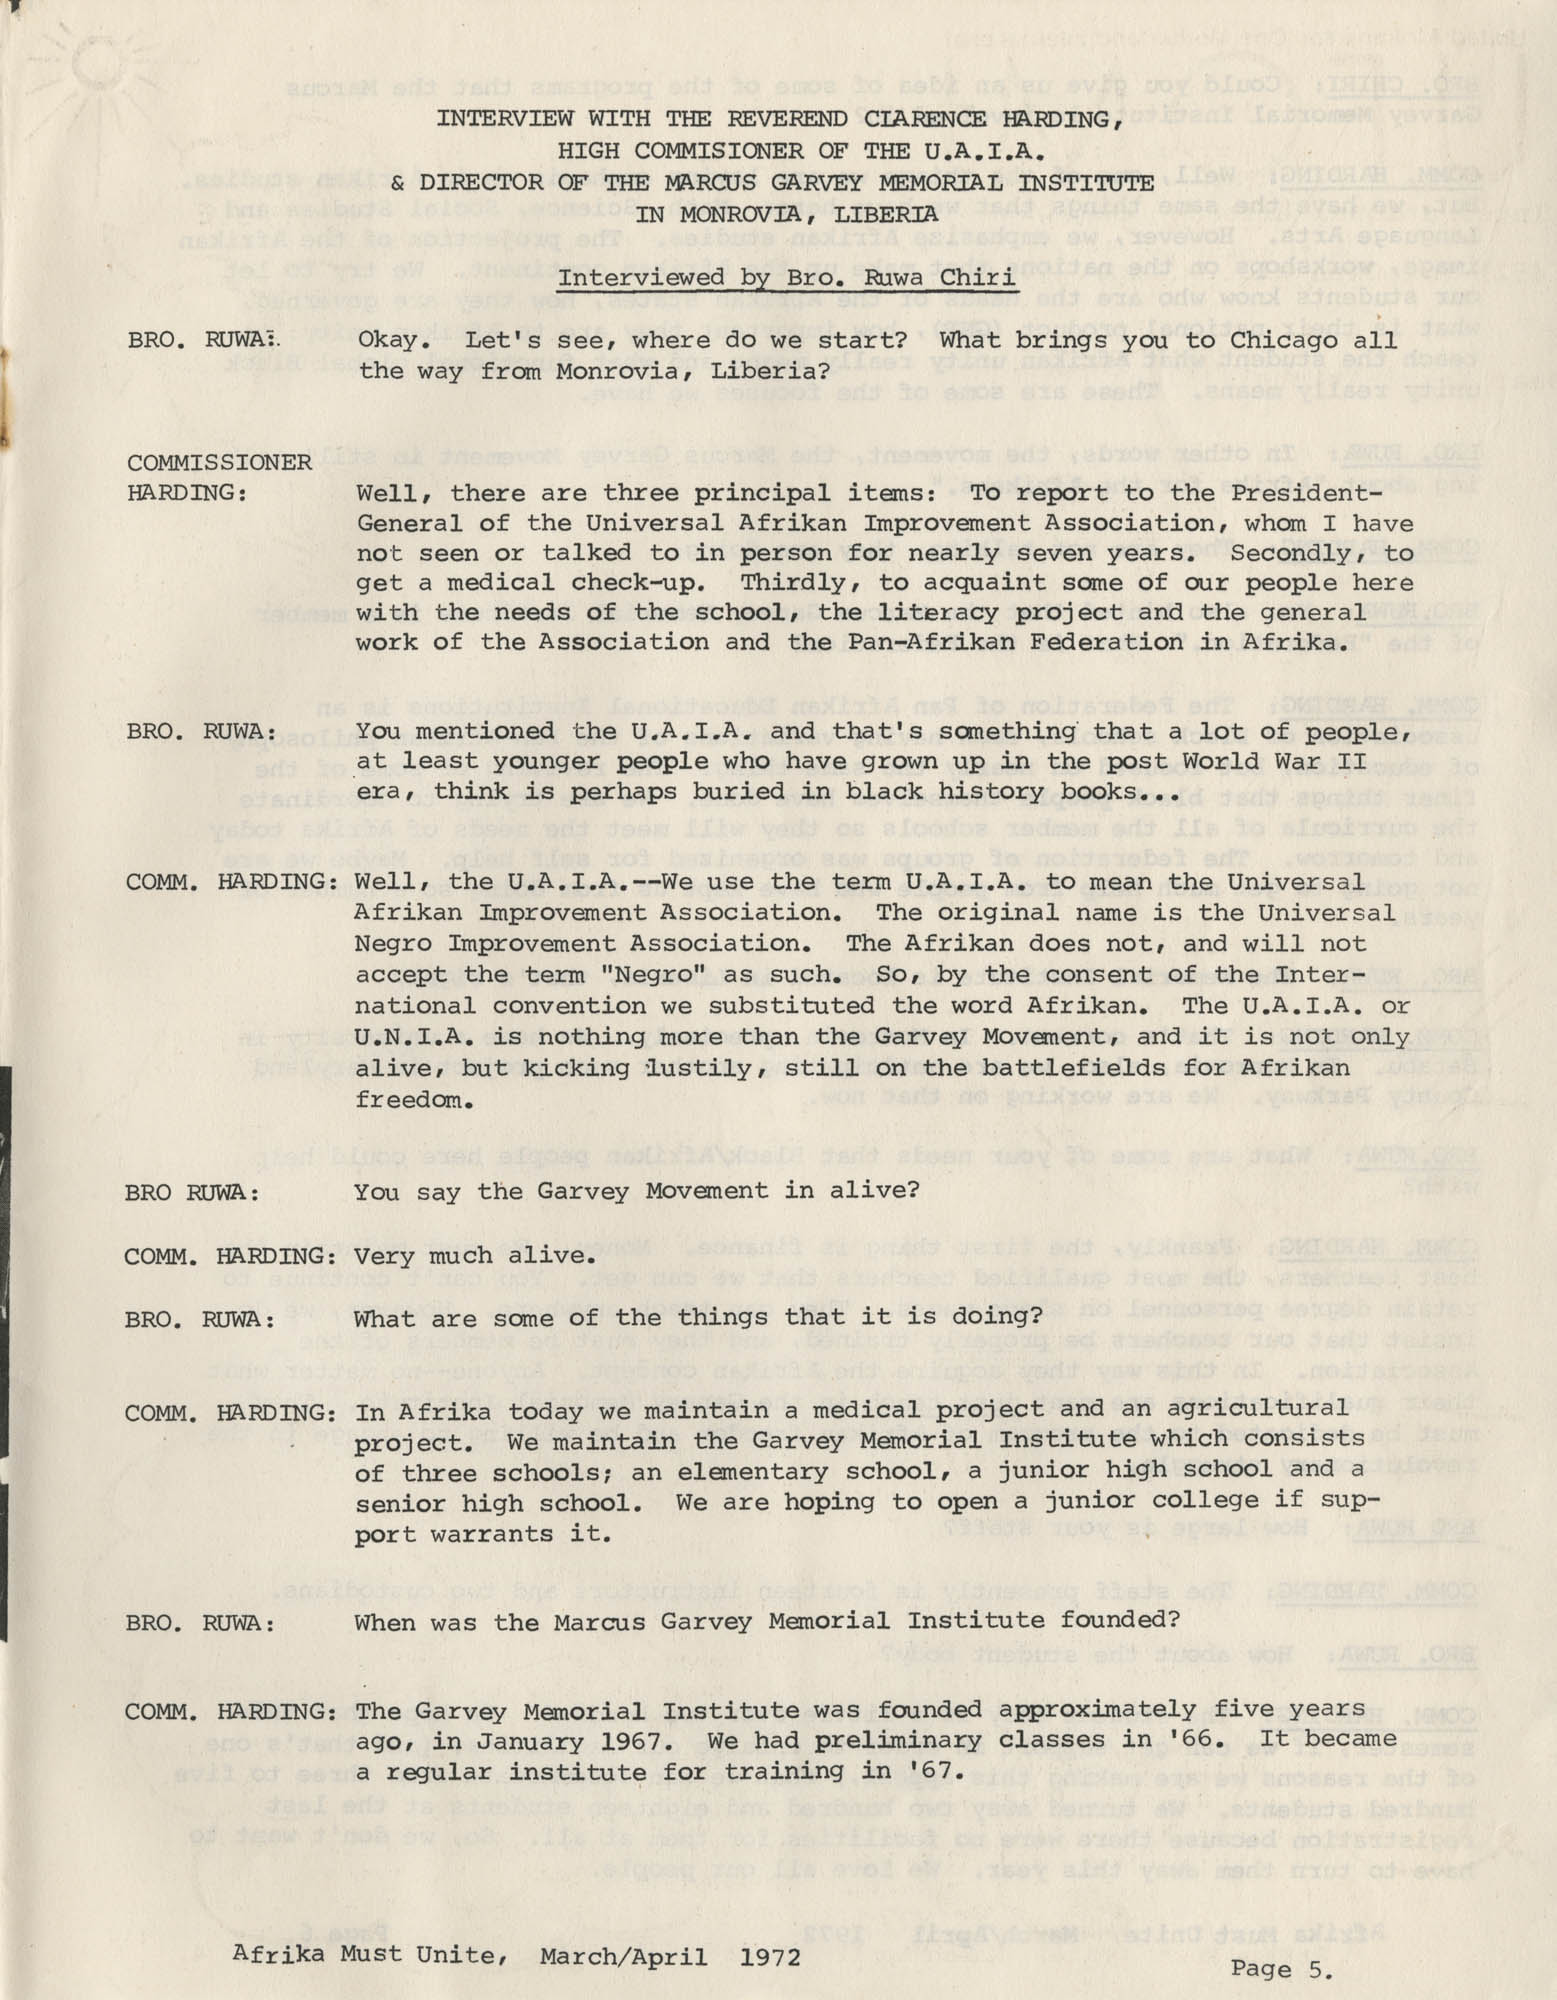 Afrika Must Unite, Vol. 1, No. 4, Page 5